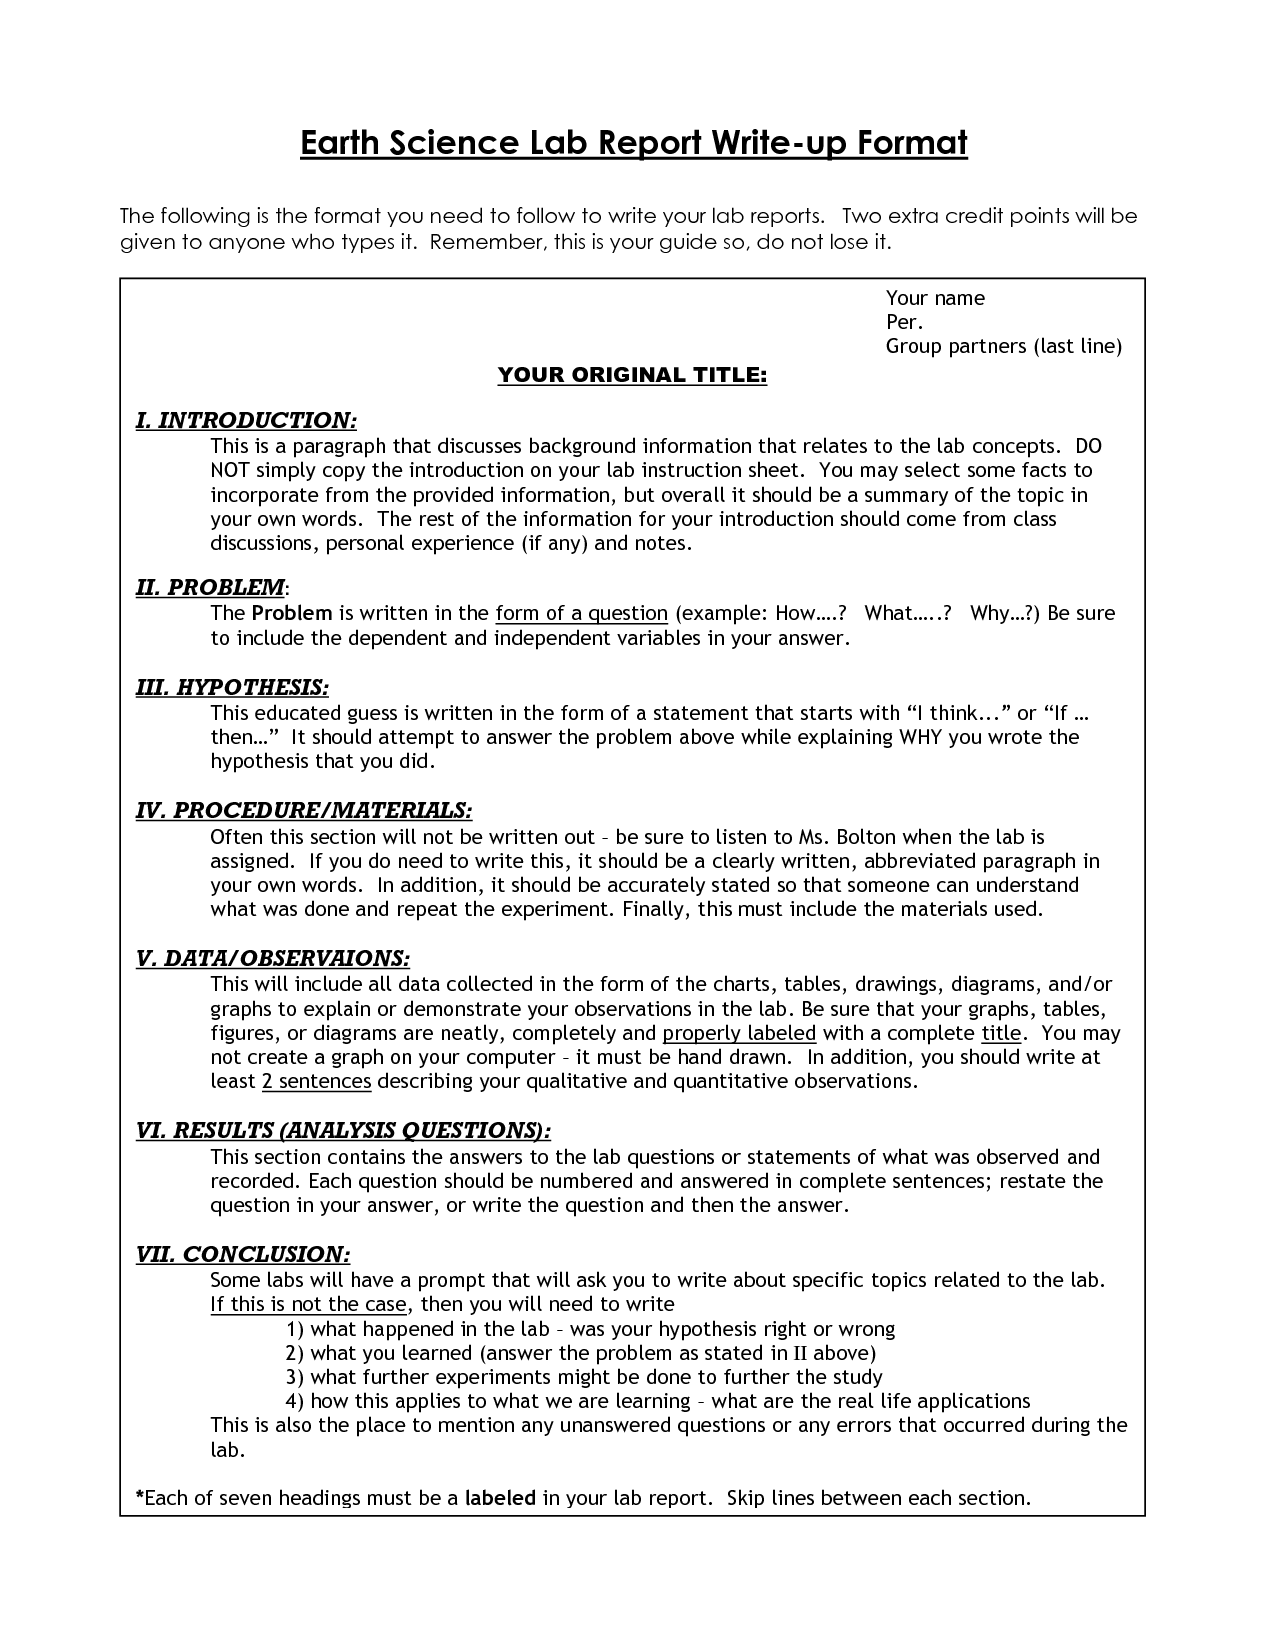 Biology Lab Template Google Search Lab Report Lab Report Template Biology Labs